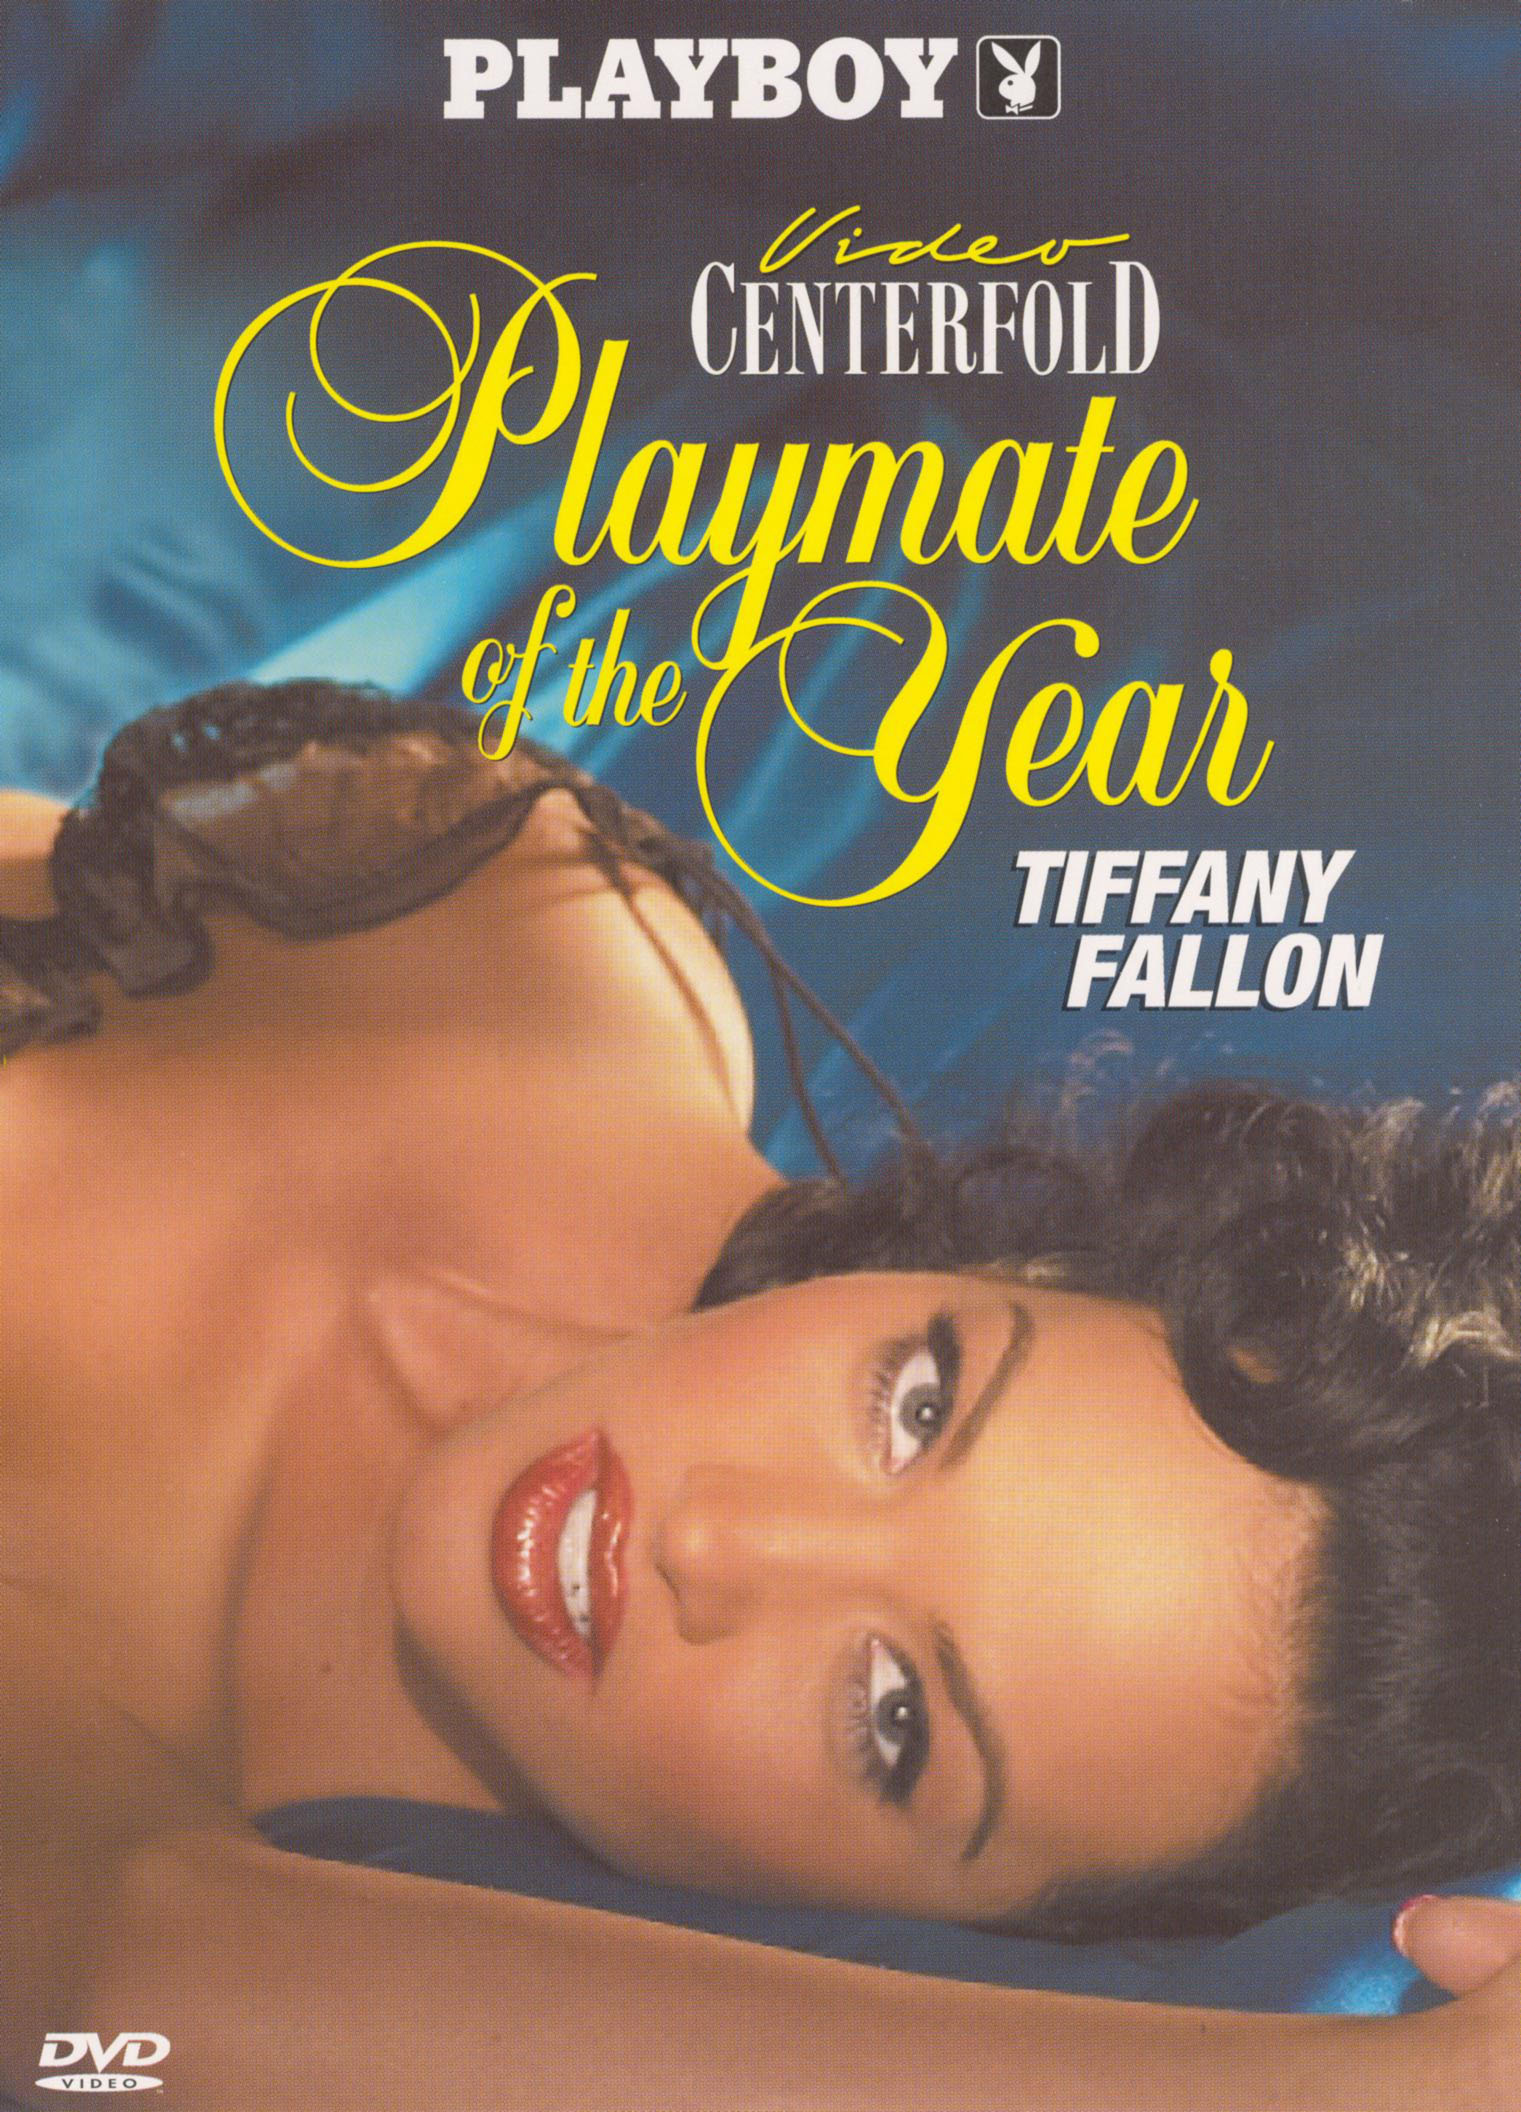 Playboy: Video Centerfold, 2005 Playmate of the Year - Tiffany Fallon